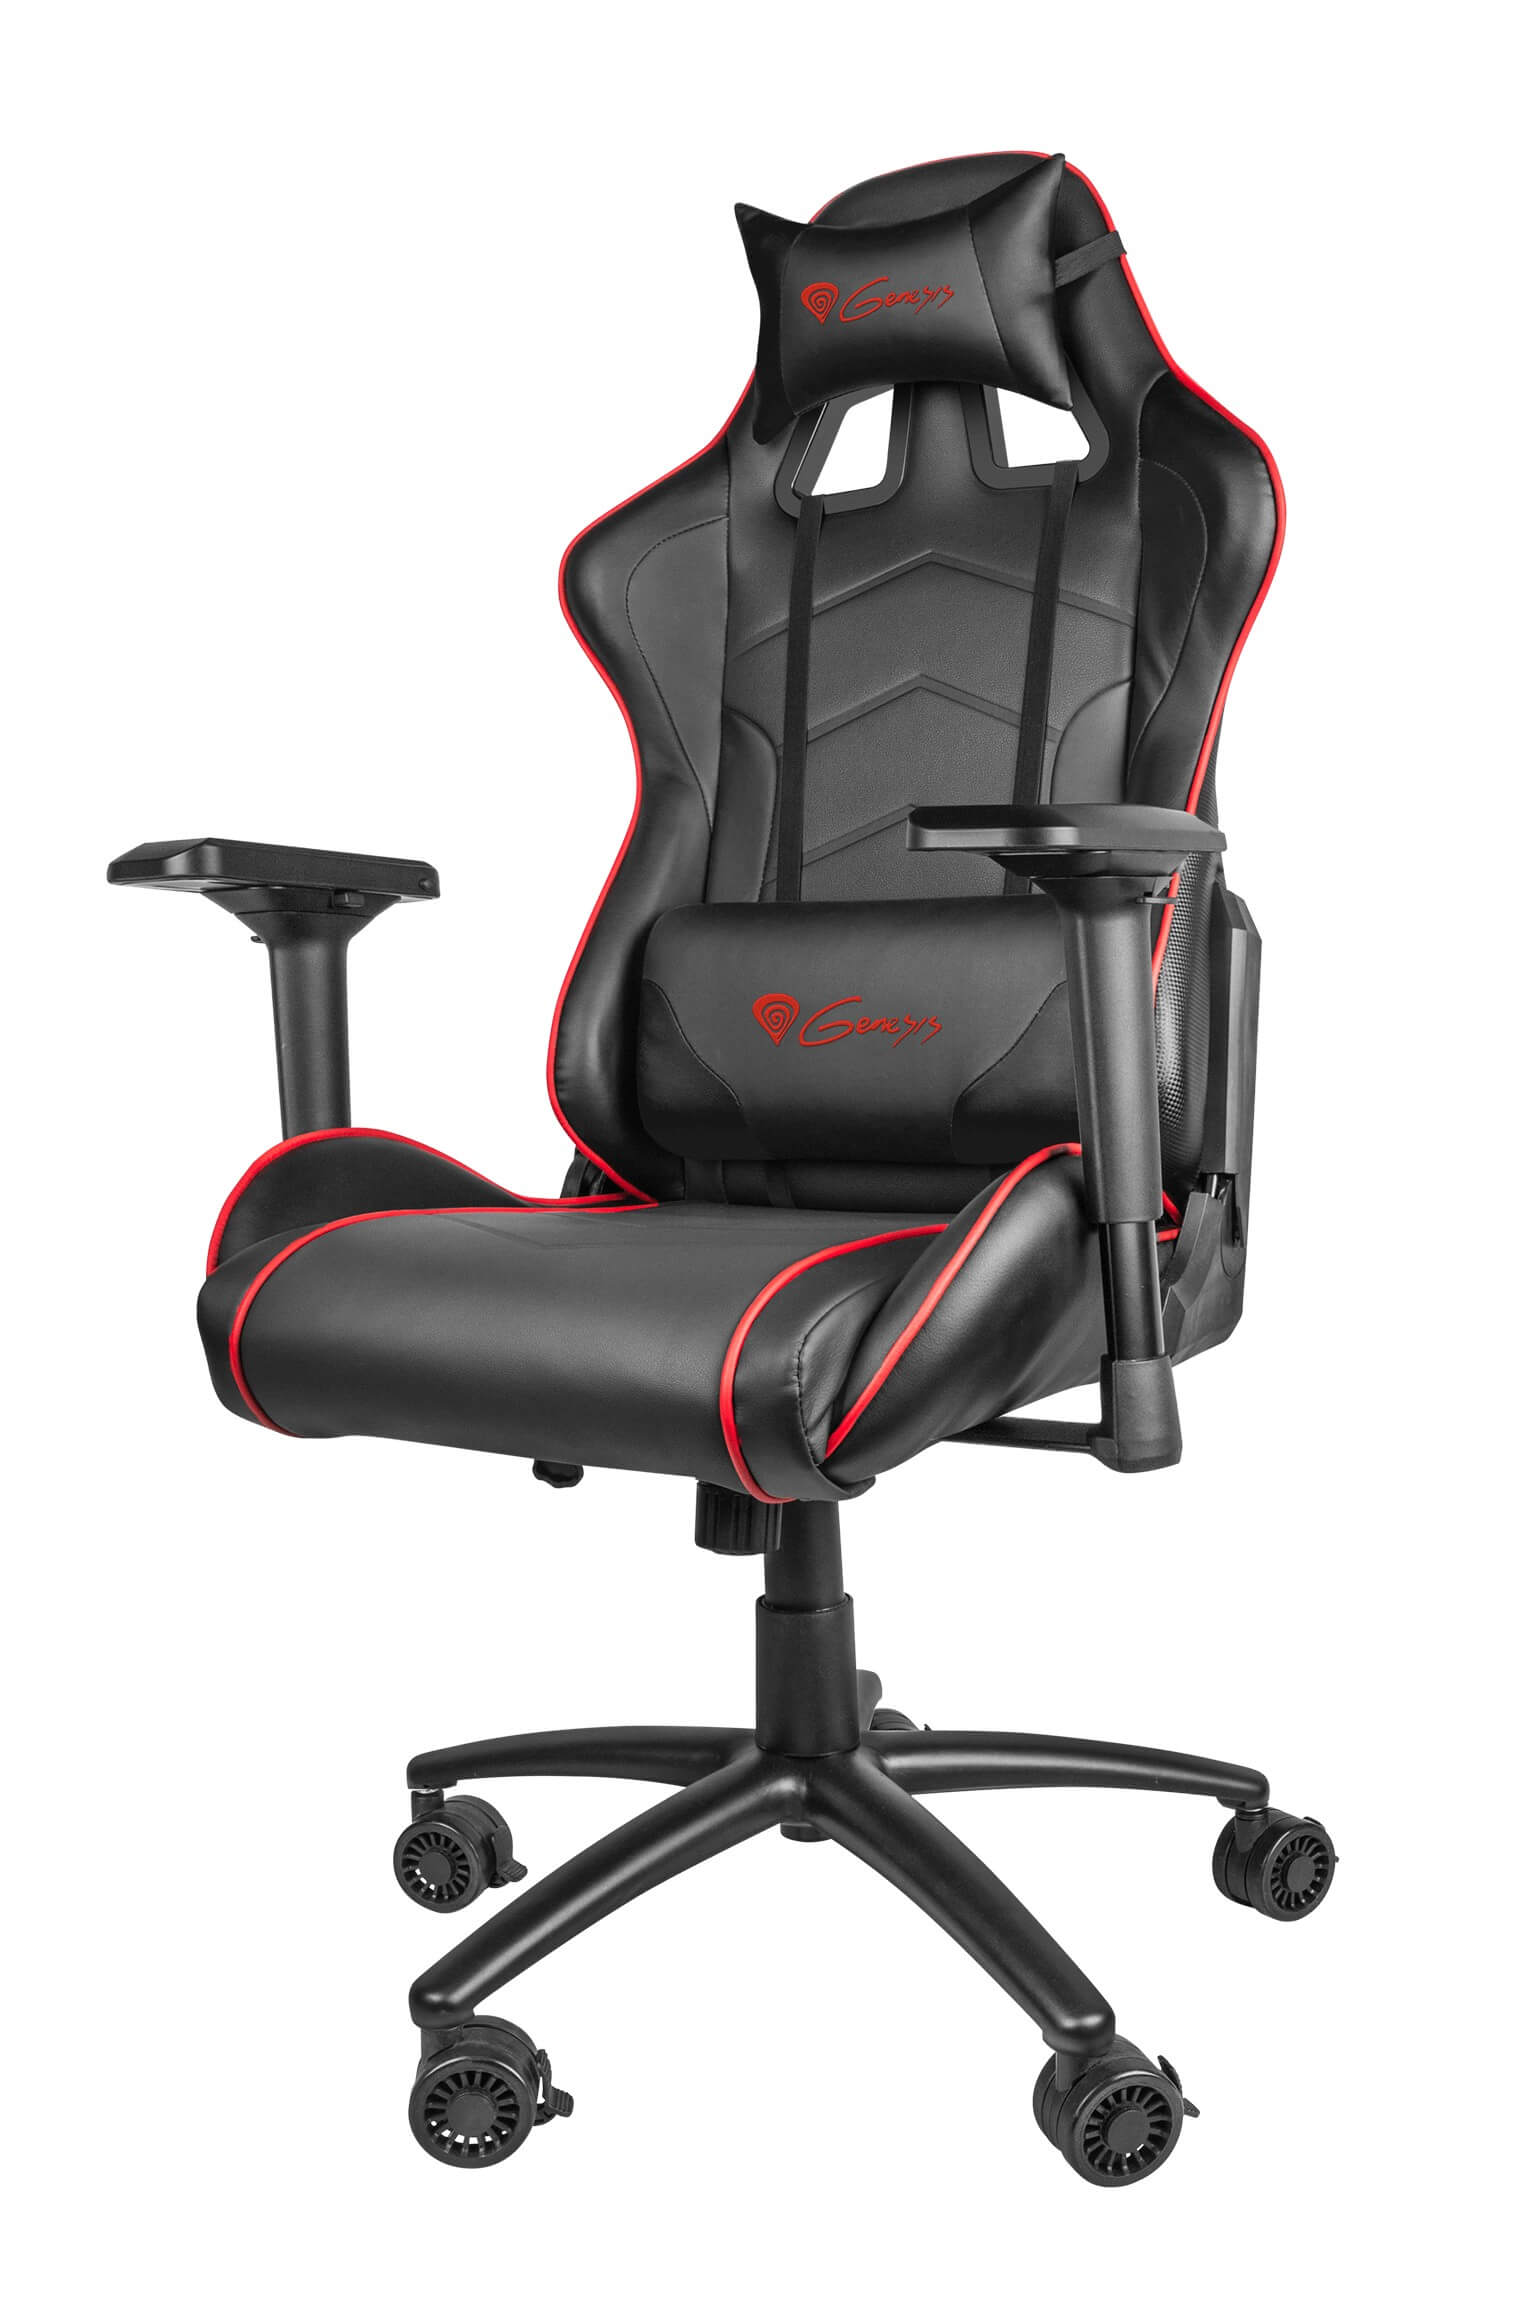 GAMING CHAIR GENESIS NITRO 880 BLACK